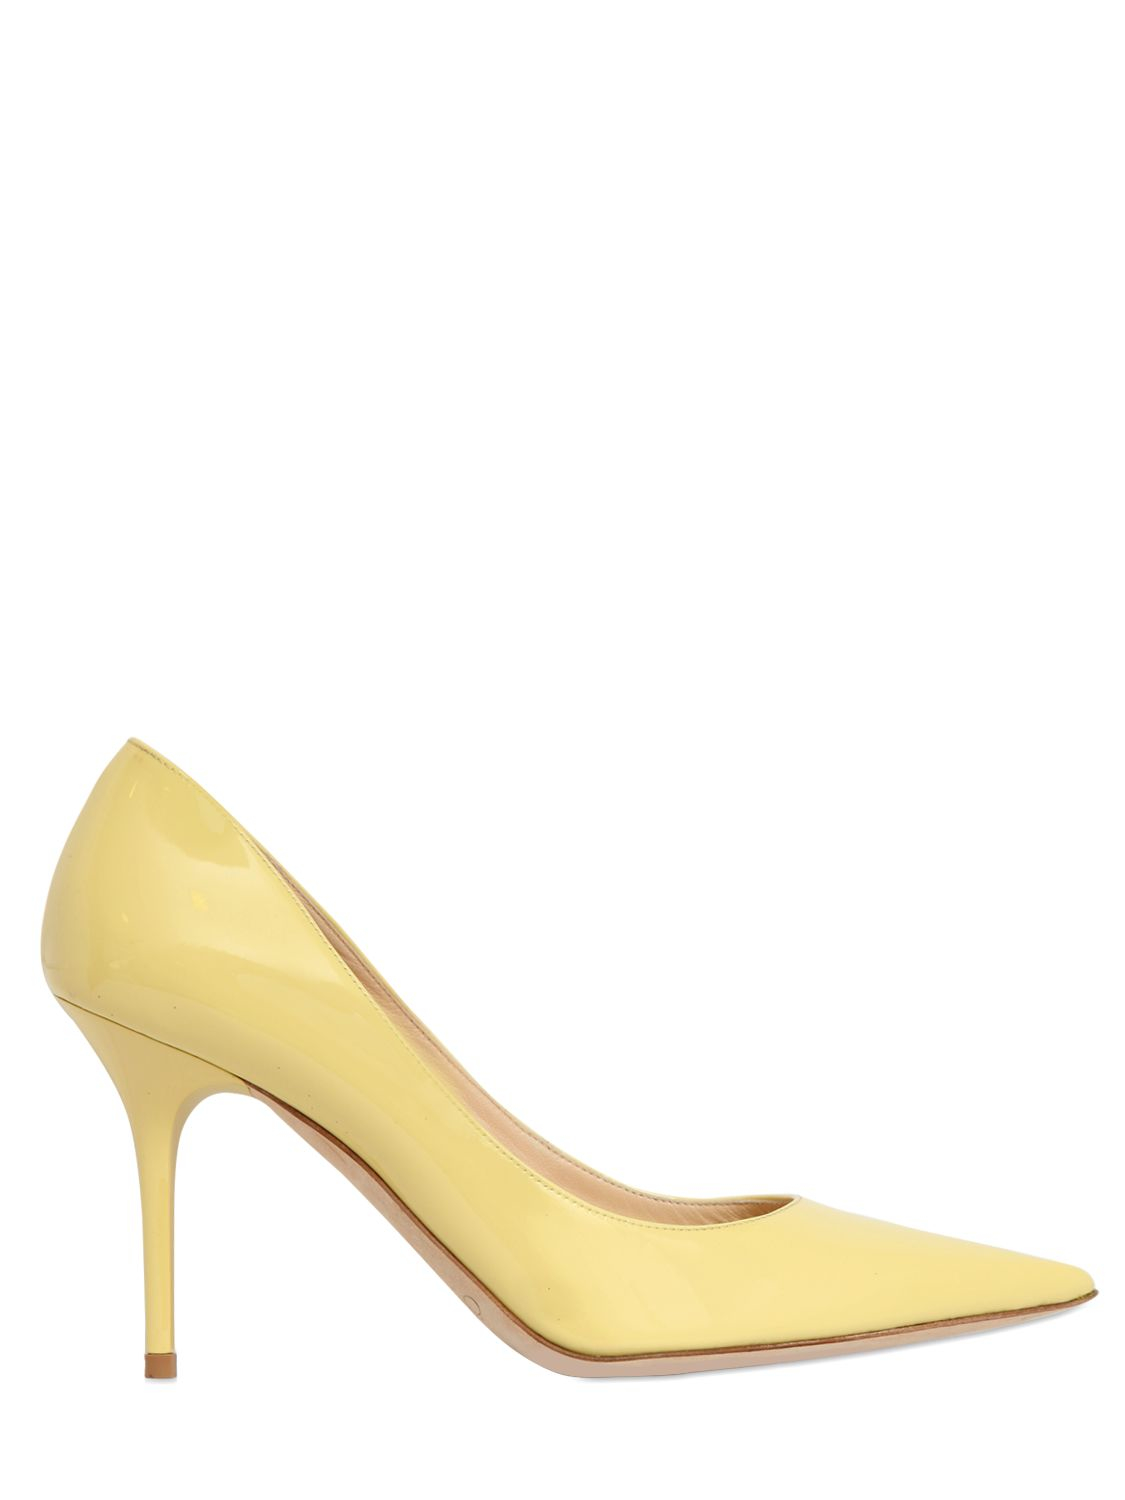 e3372effdd6e Lyst Jimmy Choo 100mm Abel Patent Leather Pumps In Yellow